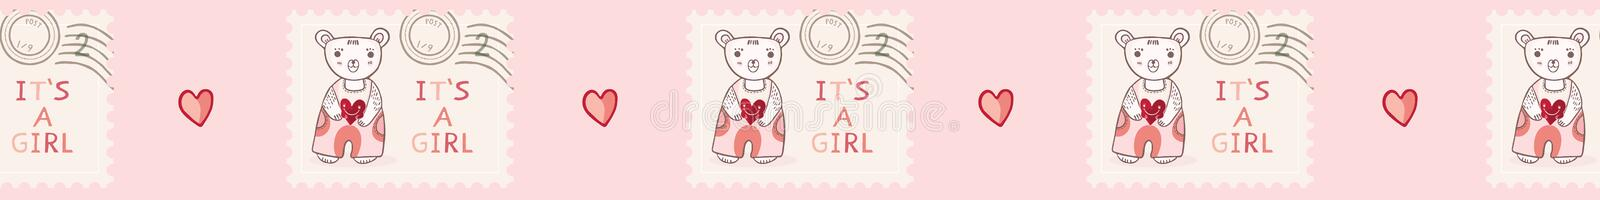 Cute its a girl teddy bear postage stamp seamless vector border stock illustration